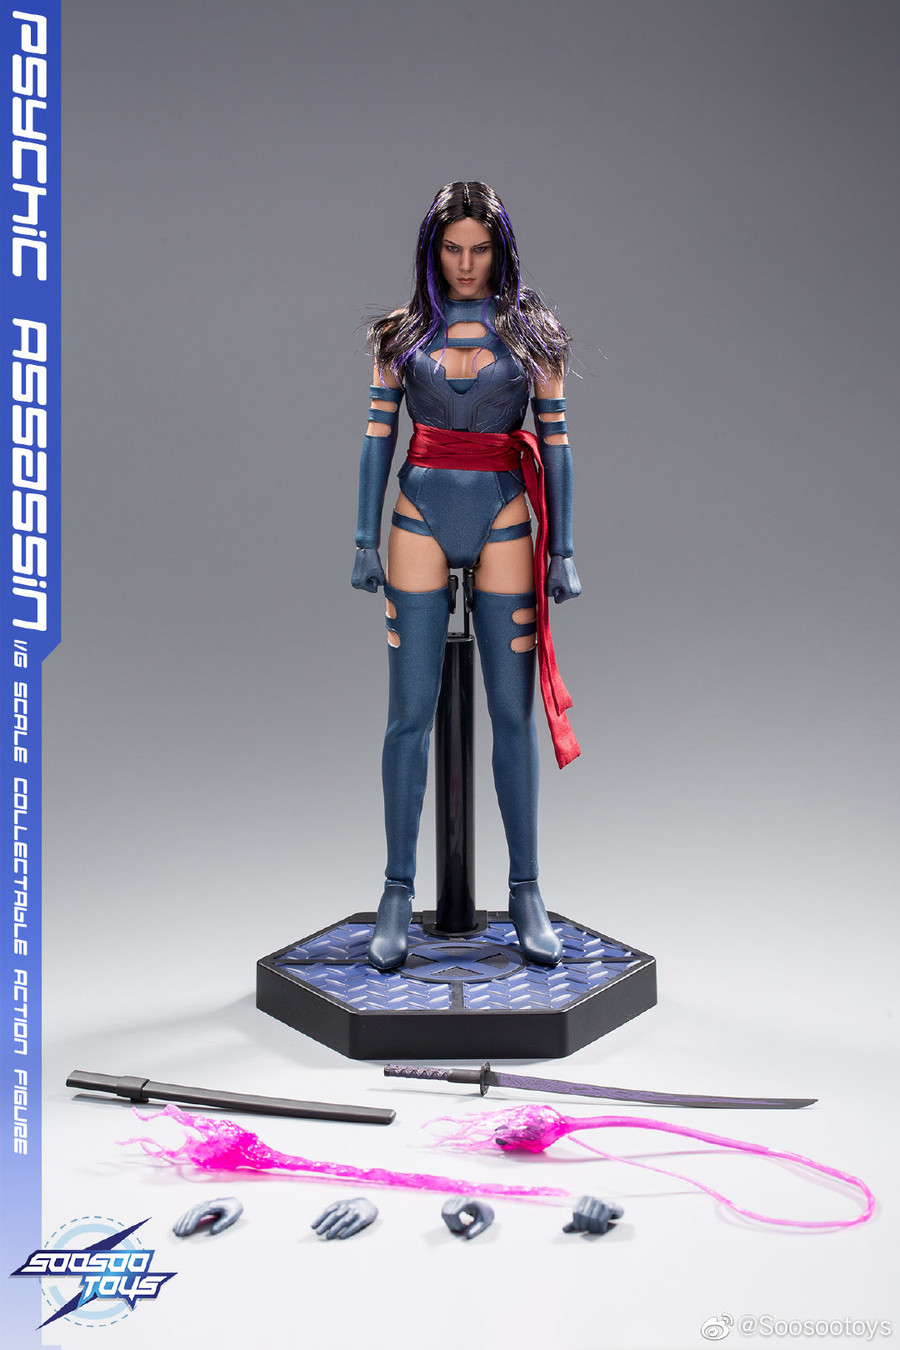 SooSoo Toys - Psychic Assassin Limited